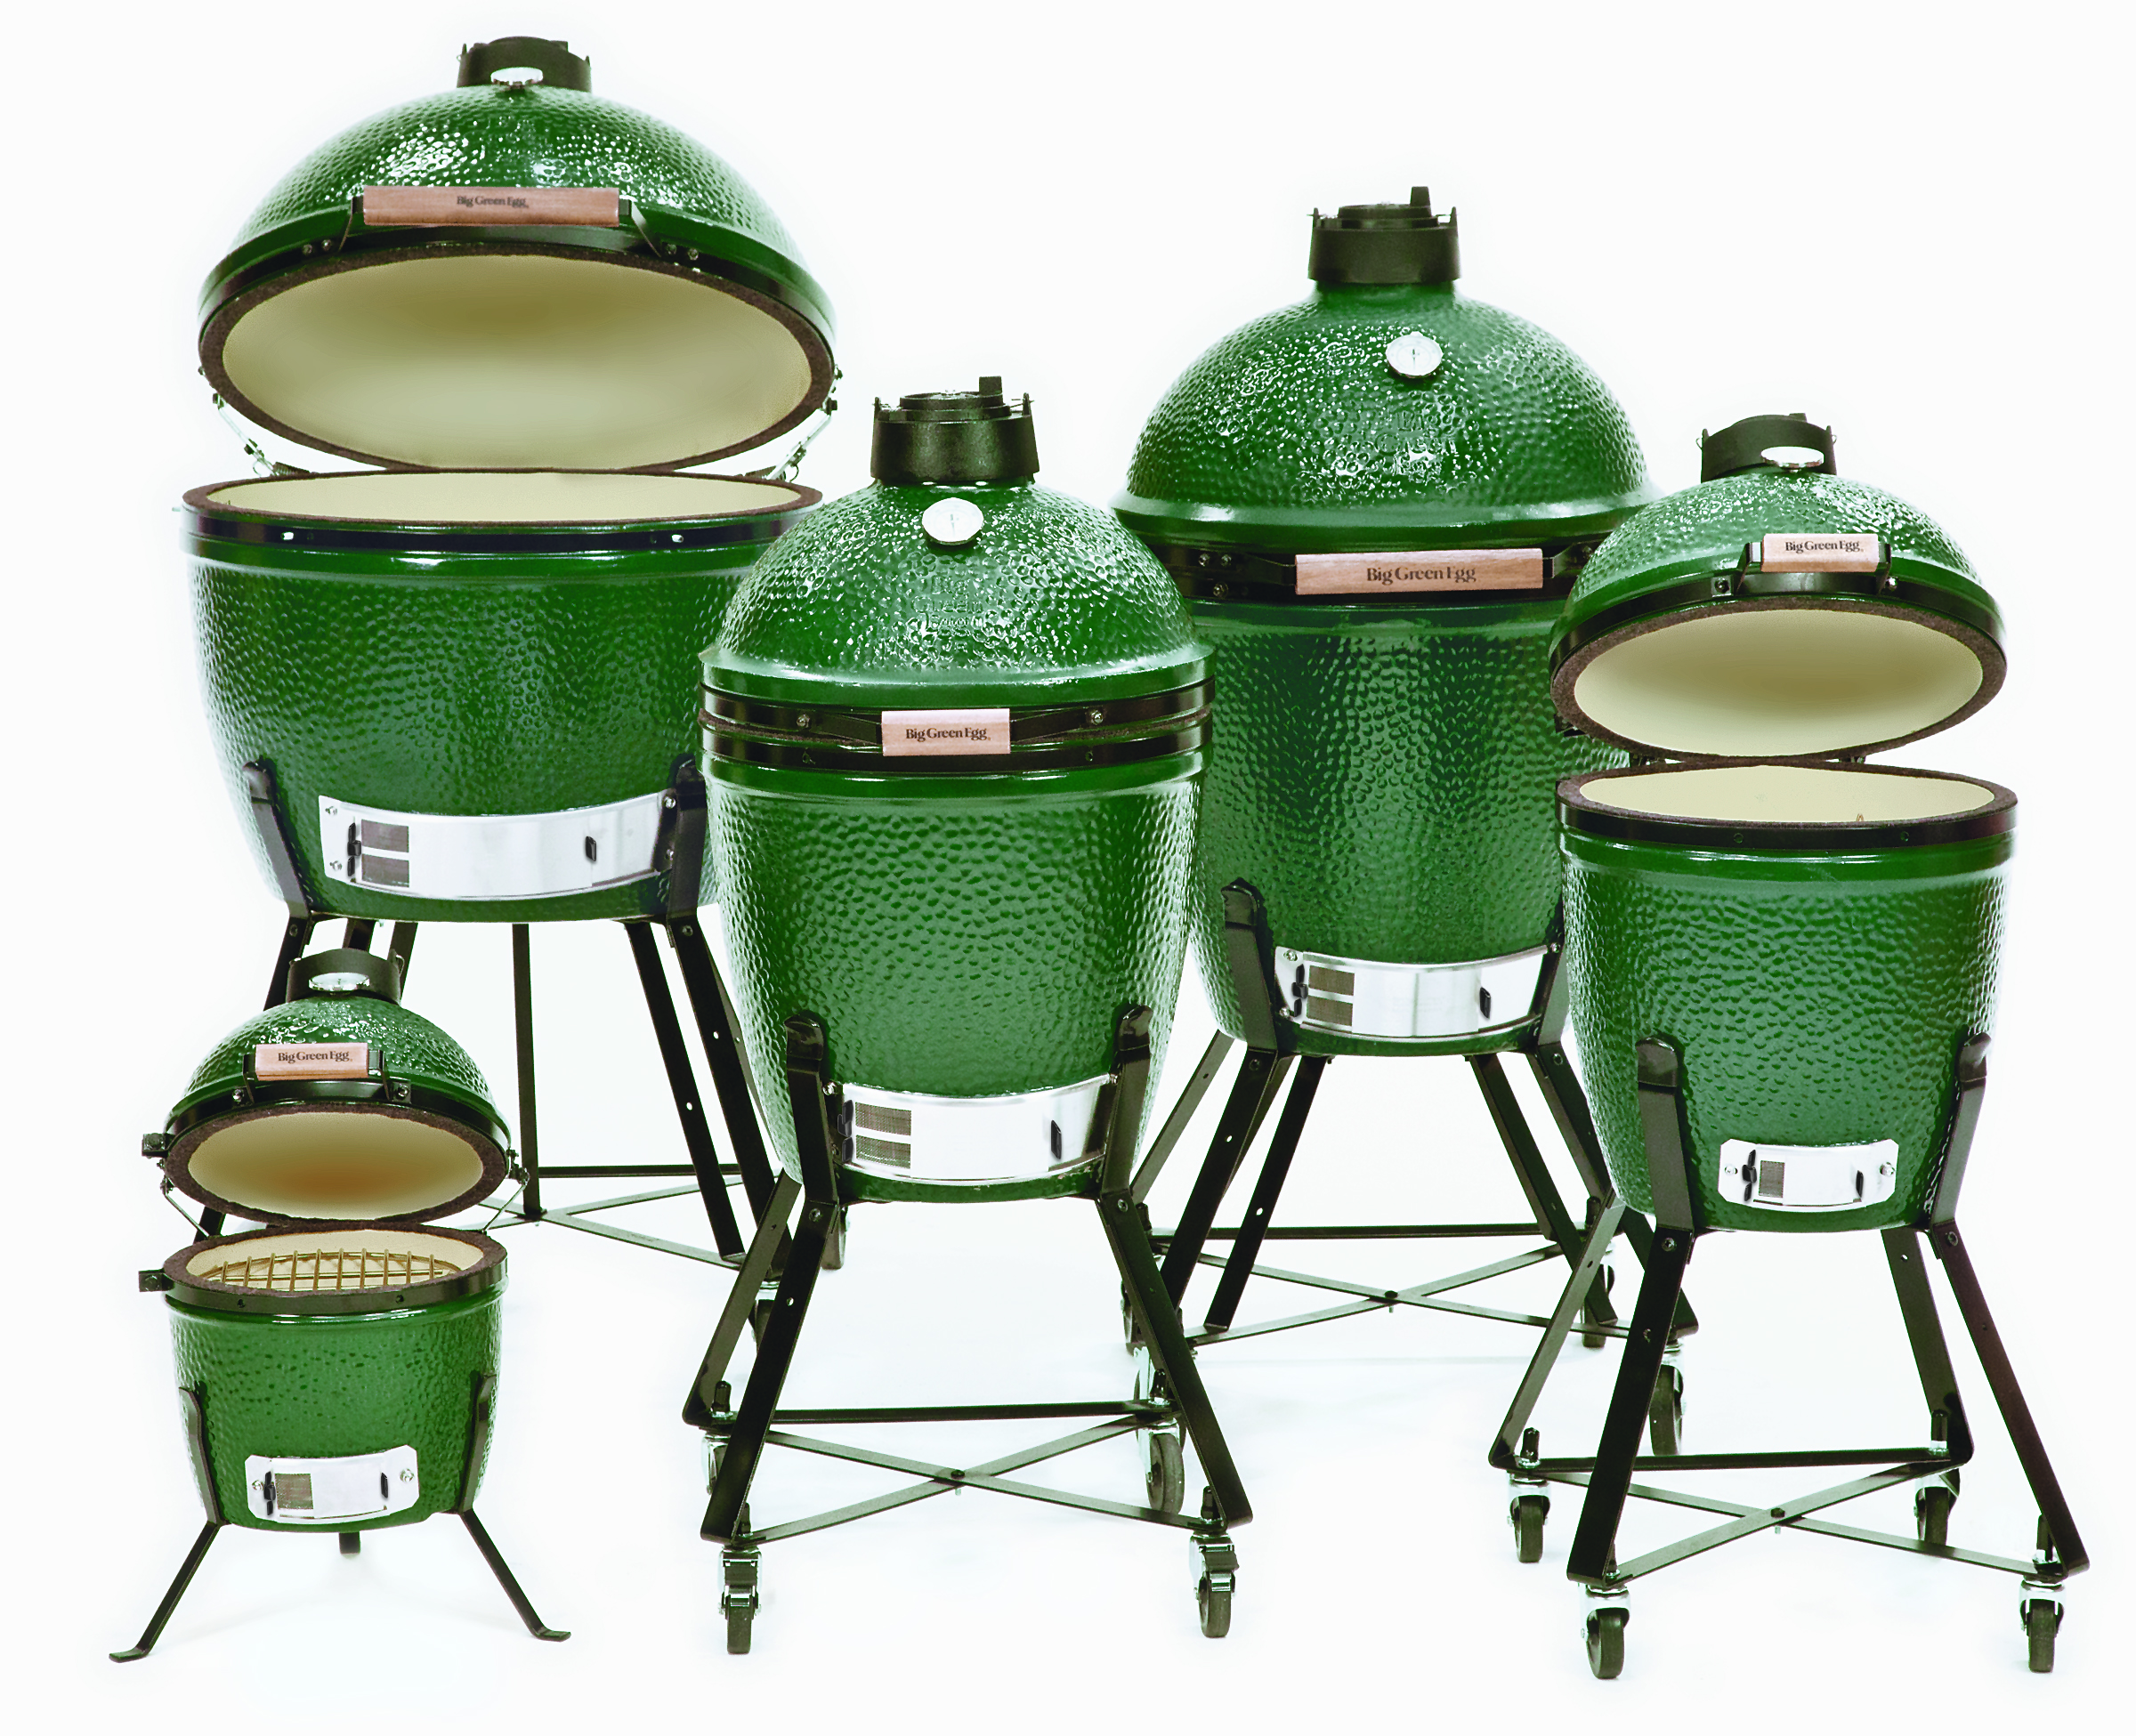 Big Green EGGs and Accessories